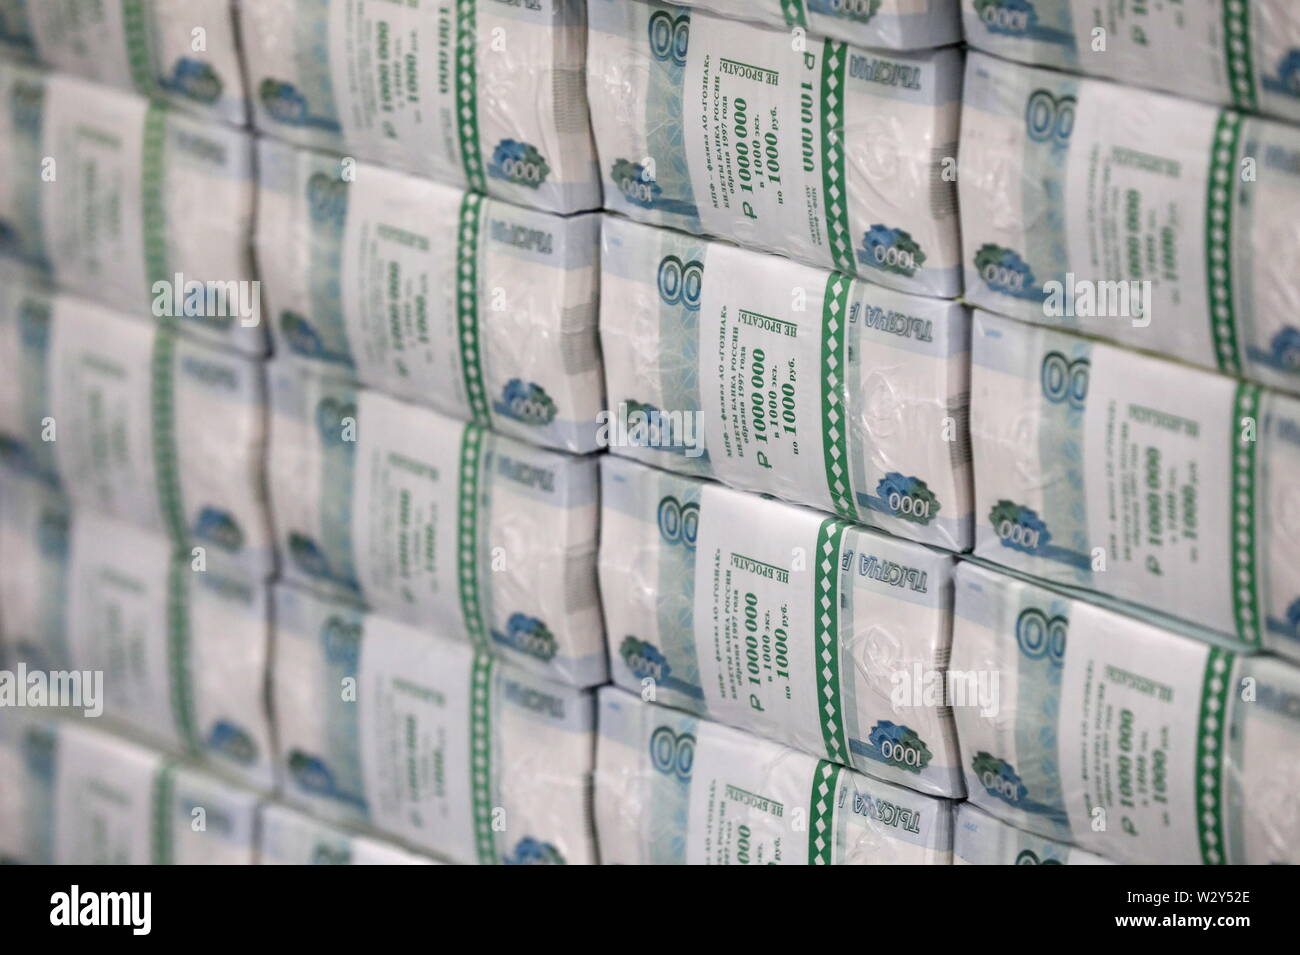 MOSCOW, RUSISA - JULY 11, 2019: Russian banknotes produced at the Moscow Printing Factory owned by Goznak, the enterprise and its branch both celebrating their centenaries in 2019. Artyom Geodakyan/TASS - Stock Image